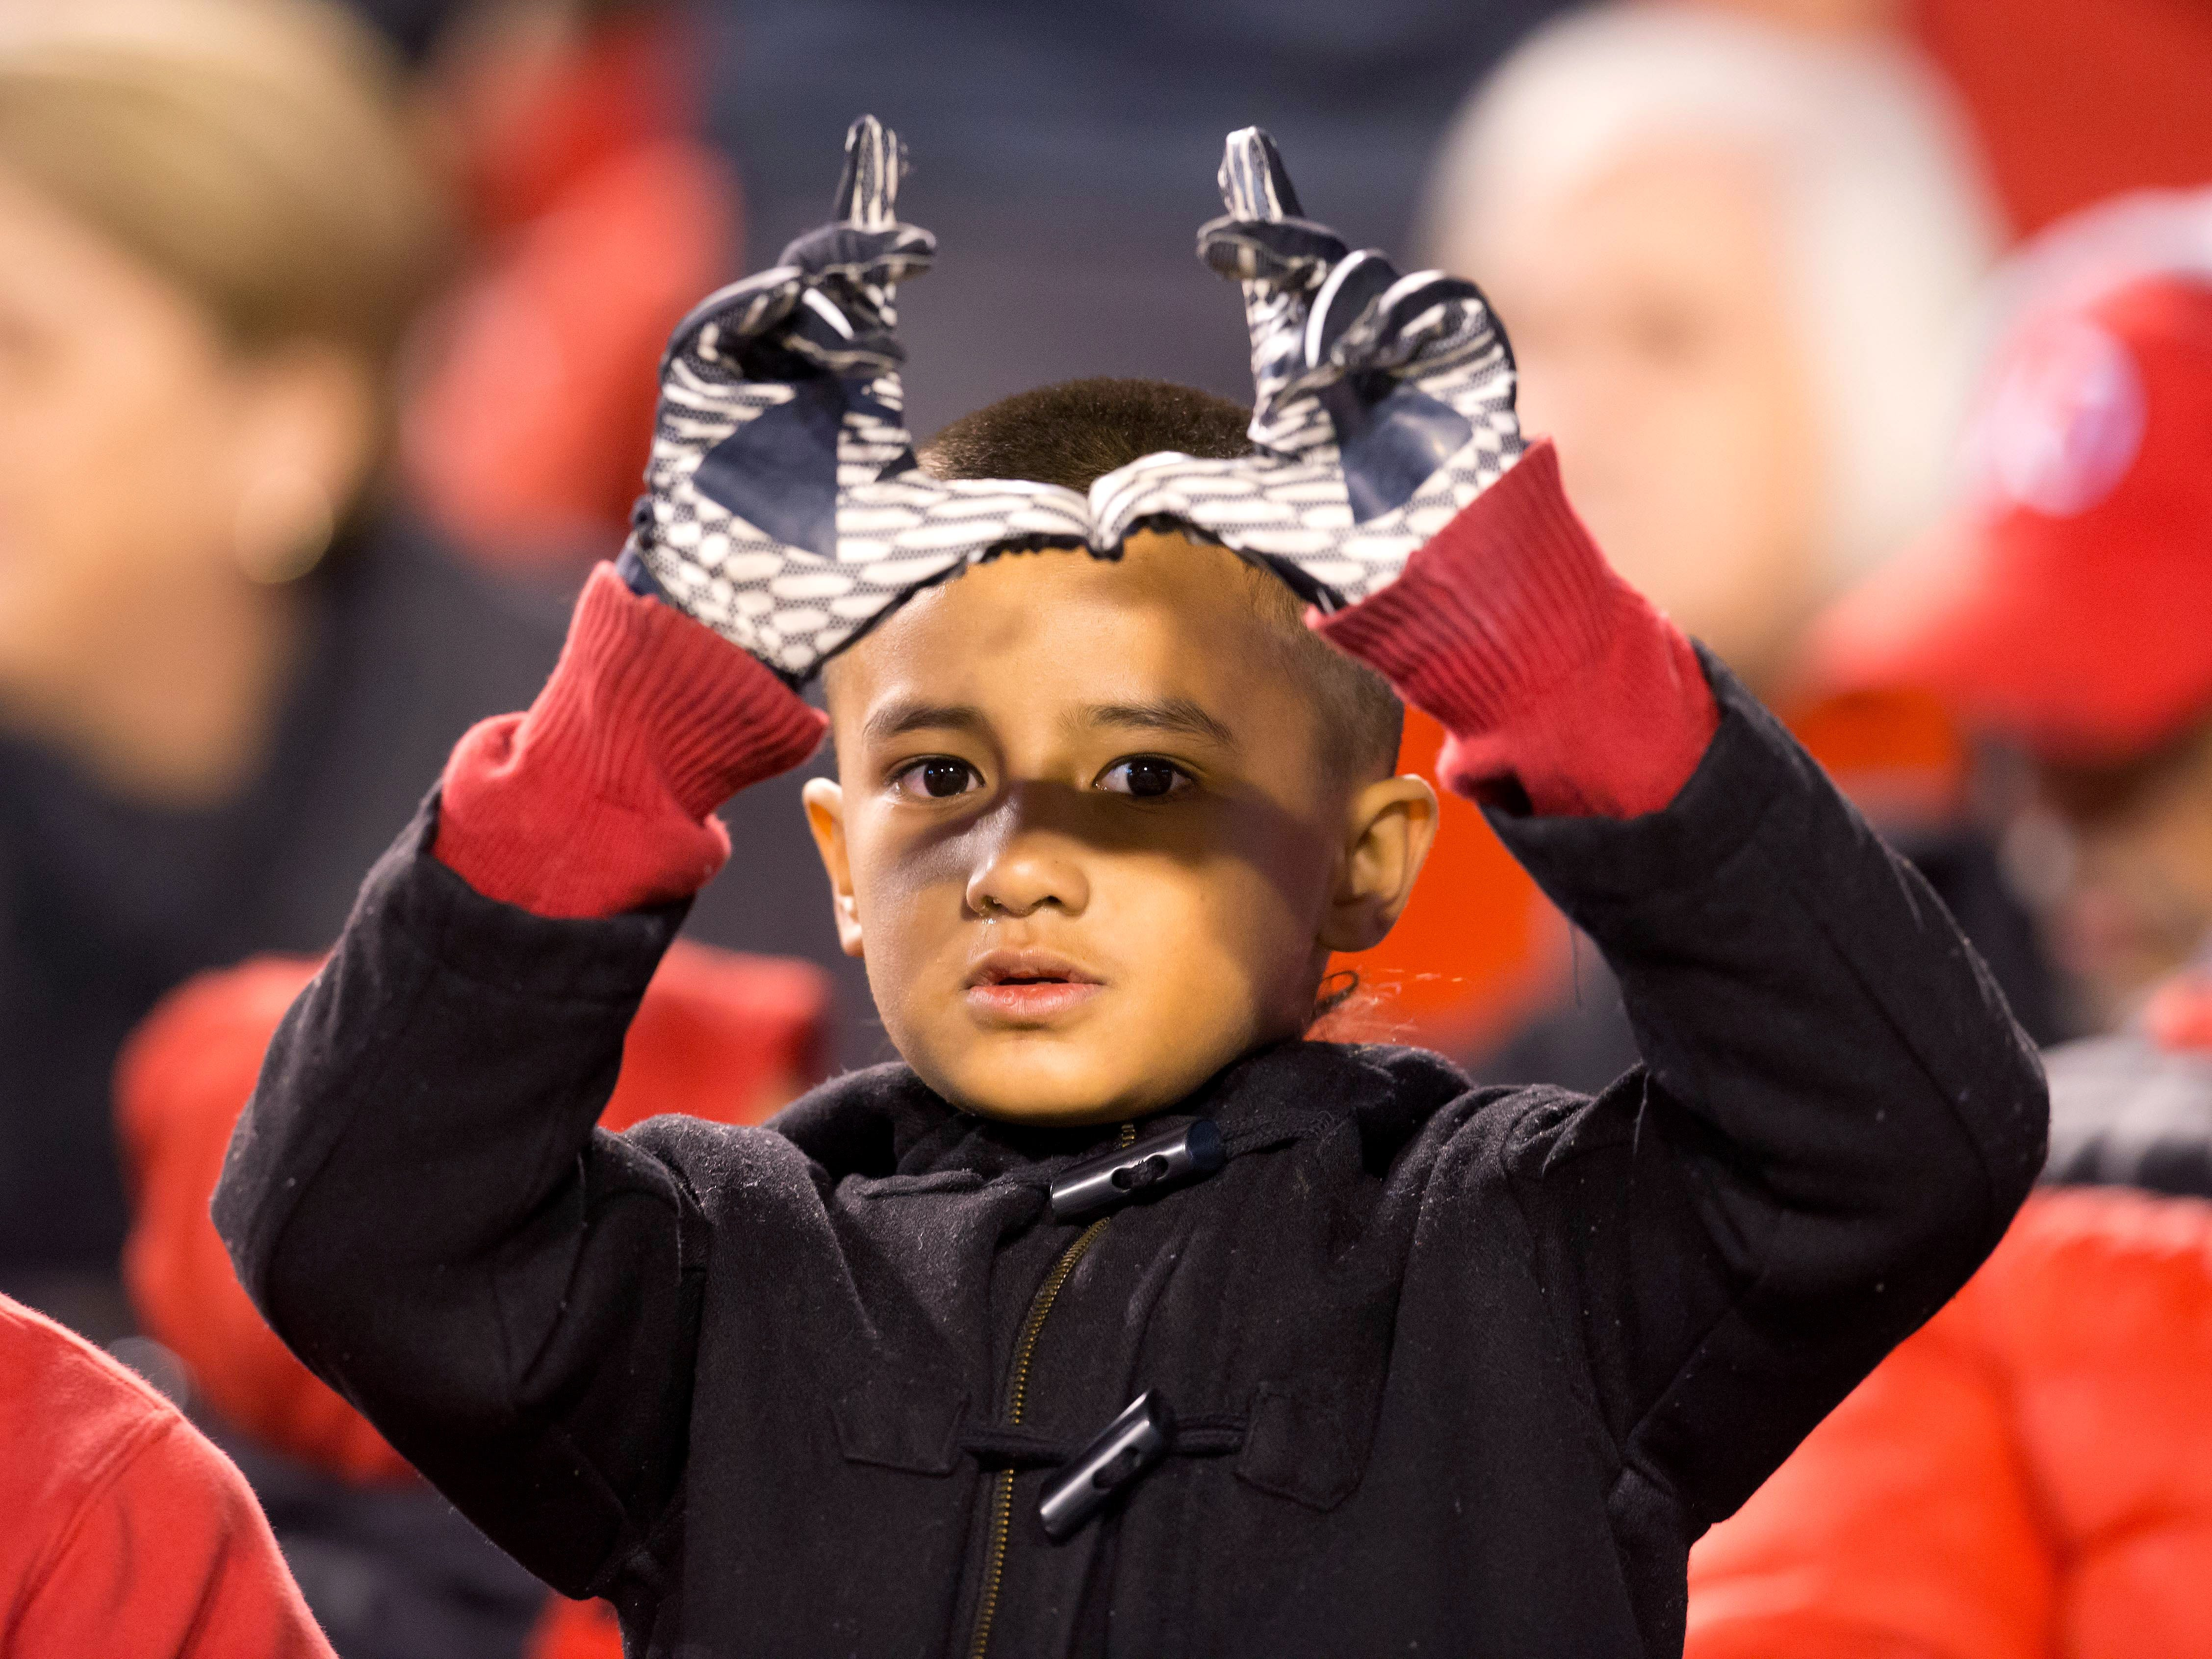 Week 7: A Utah Utes fan flashes a U from the stands during the first half against the Arizona Wildcats at Rice-Eccles Stadium.